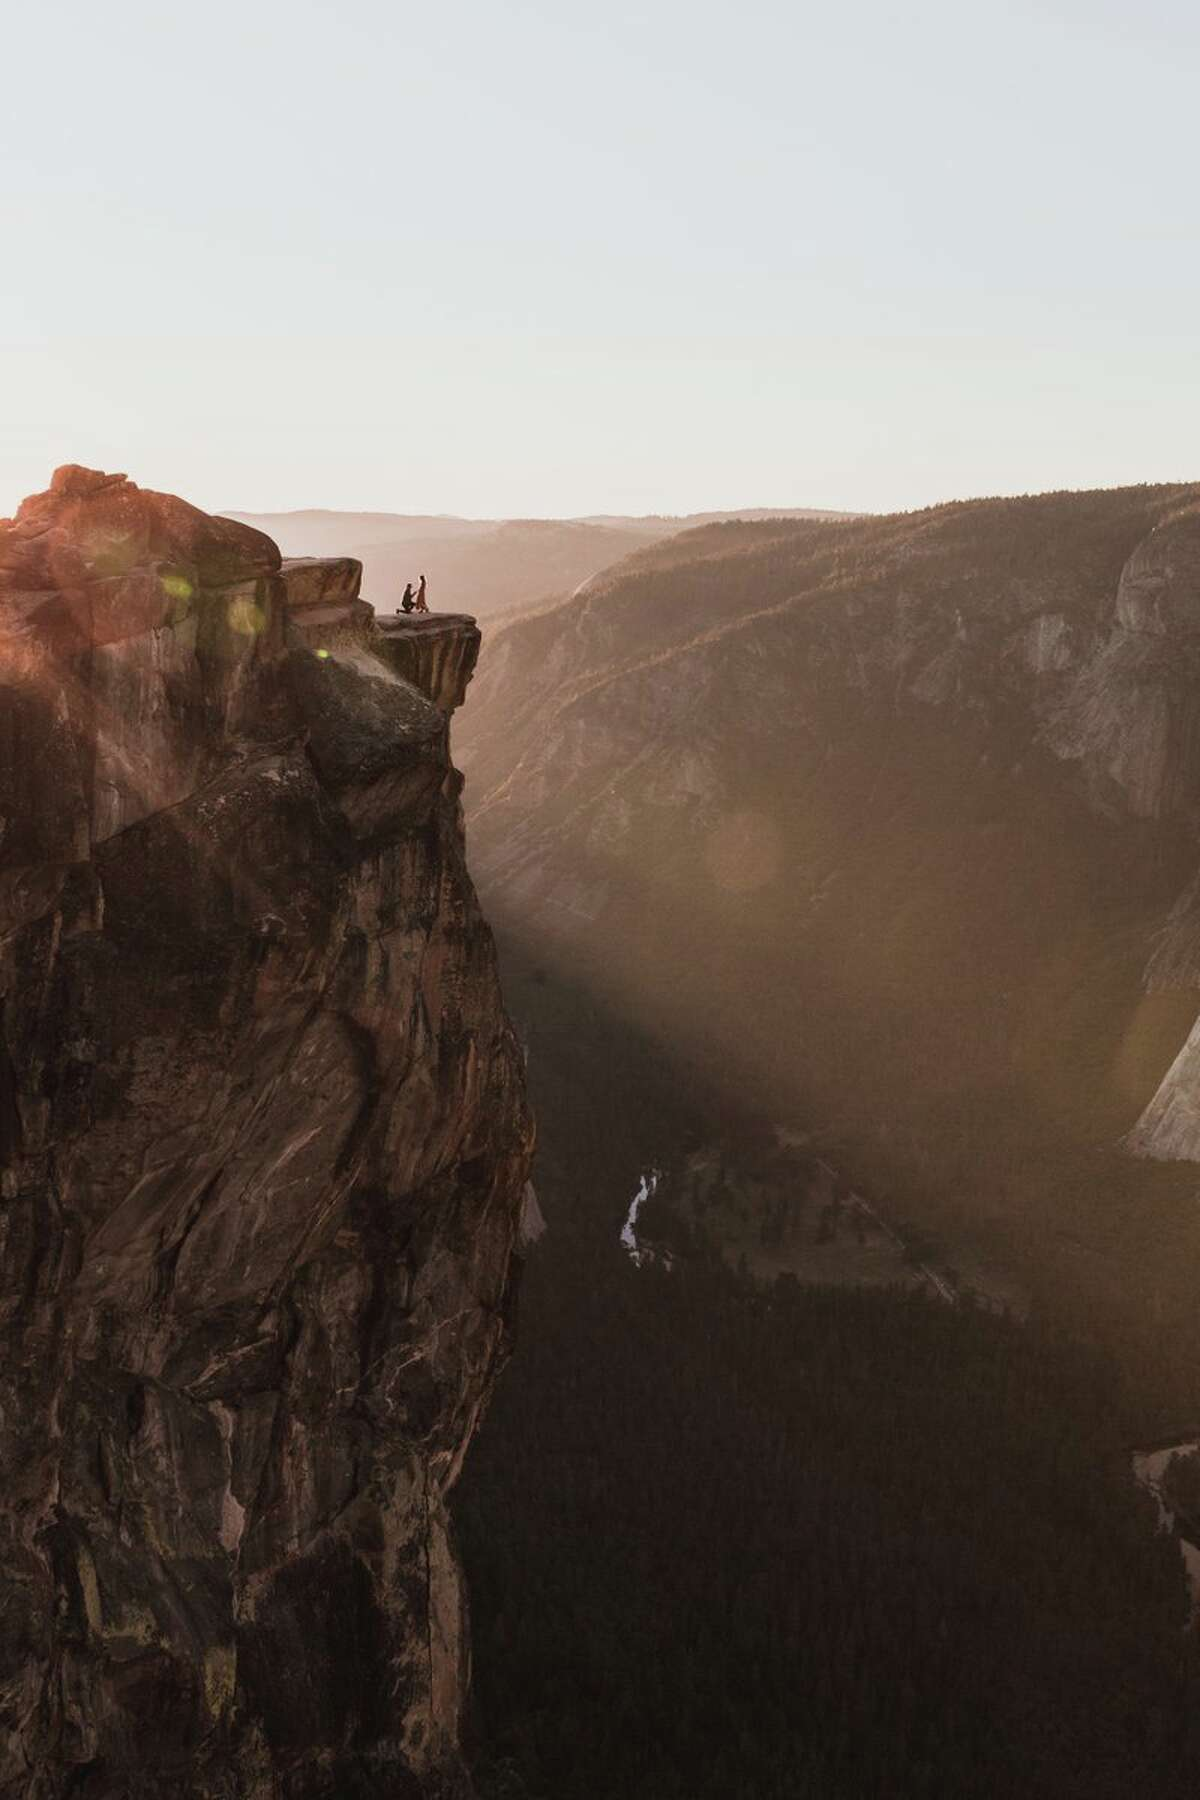 Do you recognize this couple? Michigan-based photographer Matthew Dippel took this image of an engagement at Taft Point in Yosemite National Park on October 6, 2018.